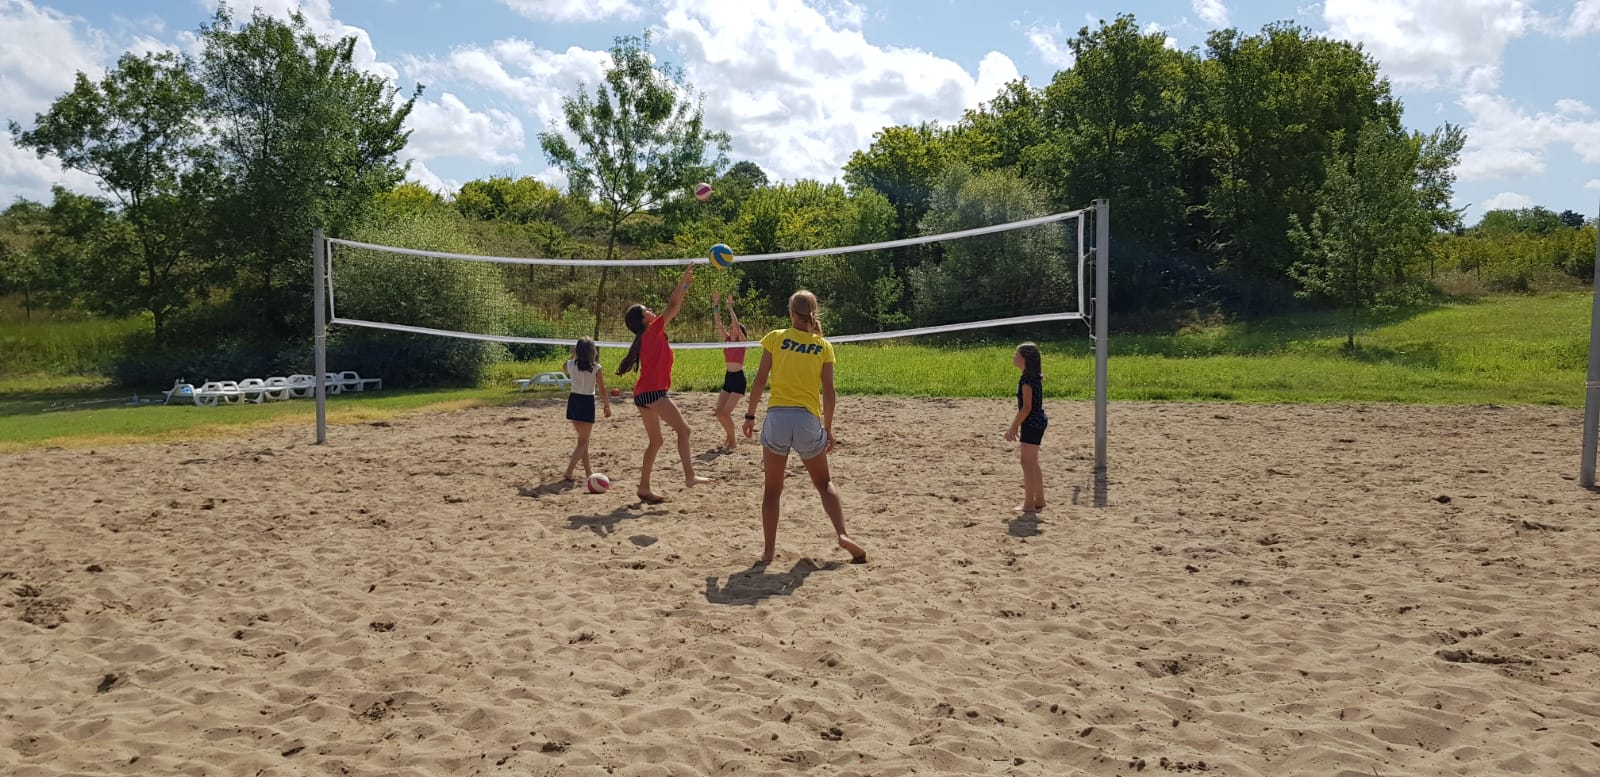 language vacations for kids at Bulgarian seaside Z camp, Day 27 - volleyball court - five girls play